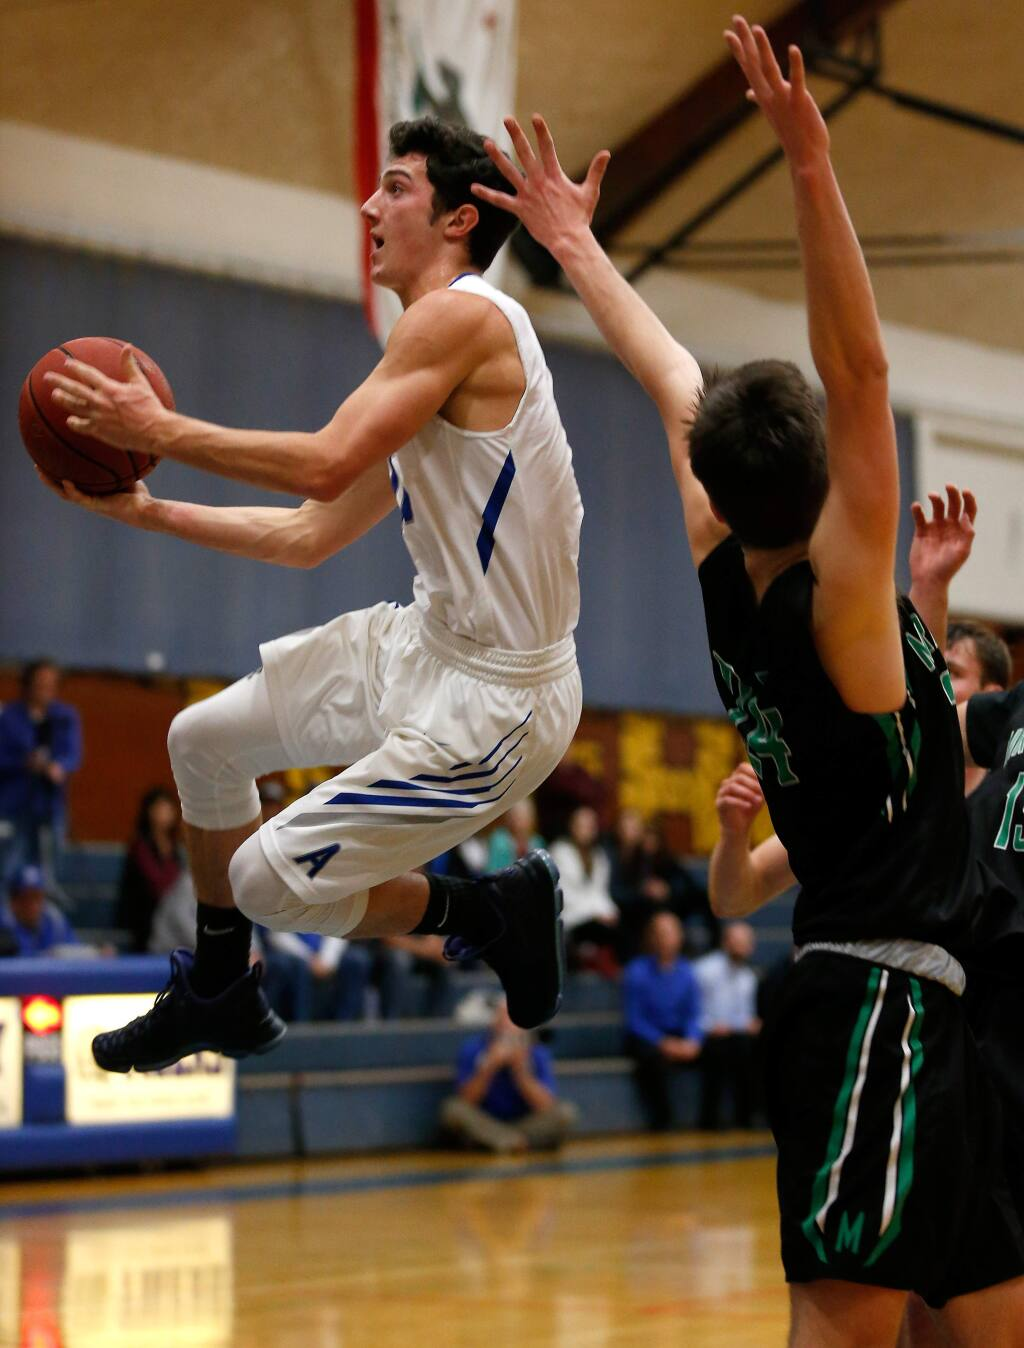 Analy's Dom Tripodi (11), left, leaps past Miramonte's Charlie Hocking (24) to score with a layup during the first half of the NCS Division 2 boys varsity basketball quarterfinal game between Miramonte and Analy high schools in Sebastopol, California on Friday, February 24, 2017. (Alvin Jornada / The Press Democrat)